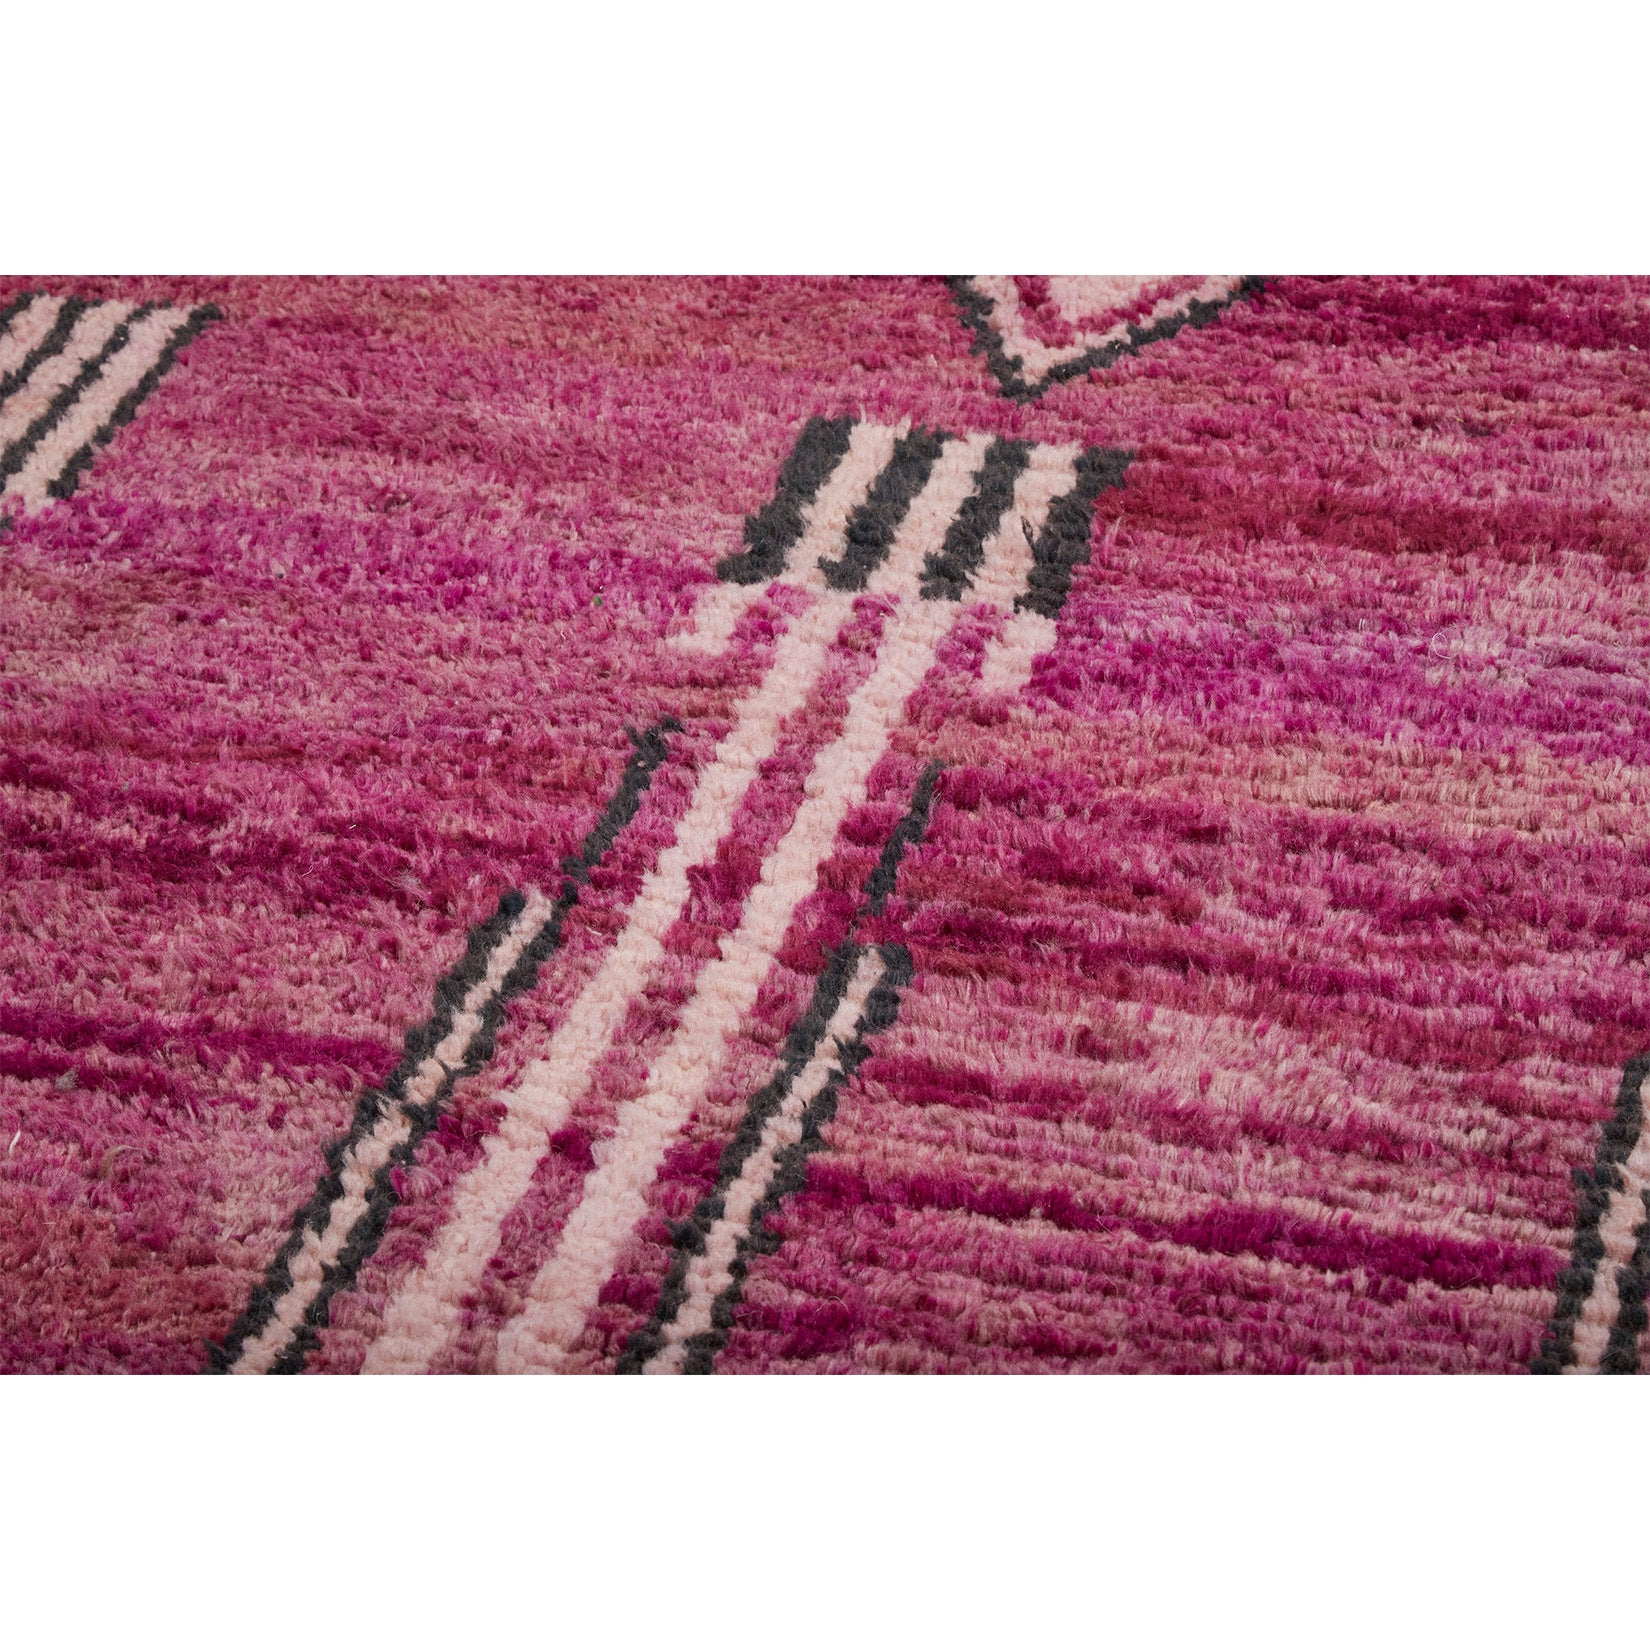 Purple vintage wool berber carpet - Kantara | Moroccan Rugs